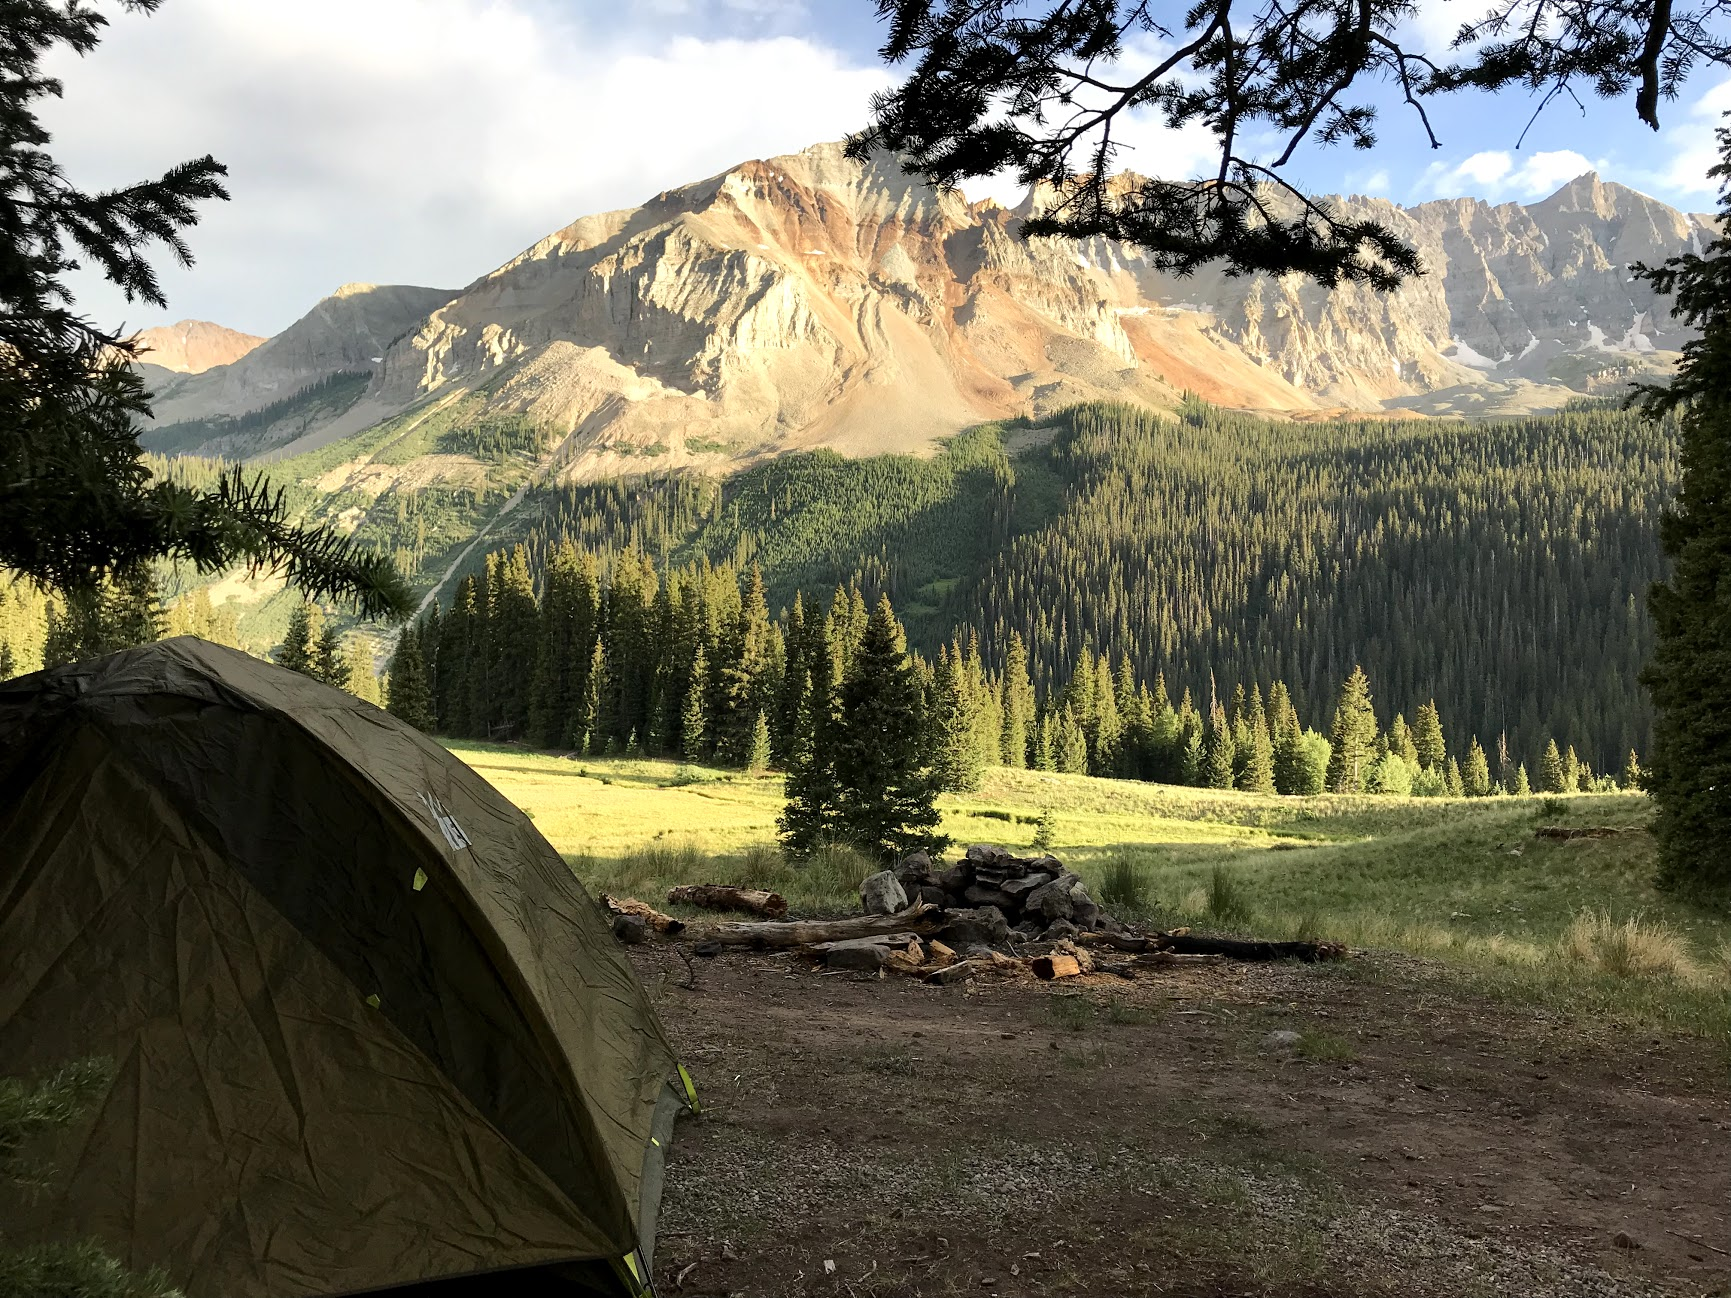 Camping near Ophir, Colorado